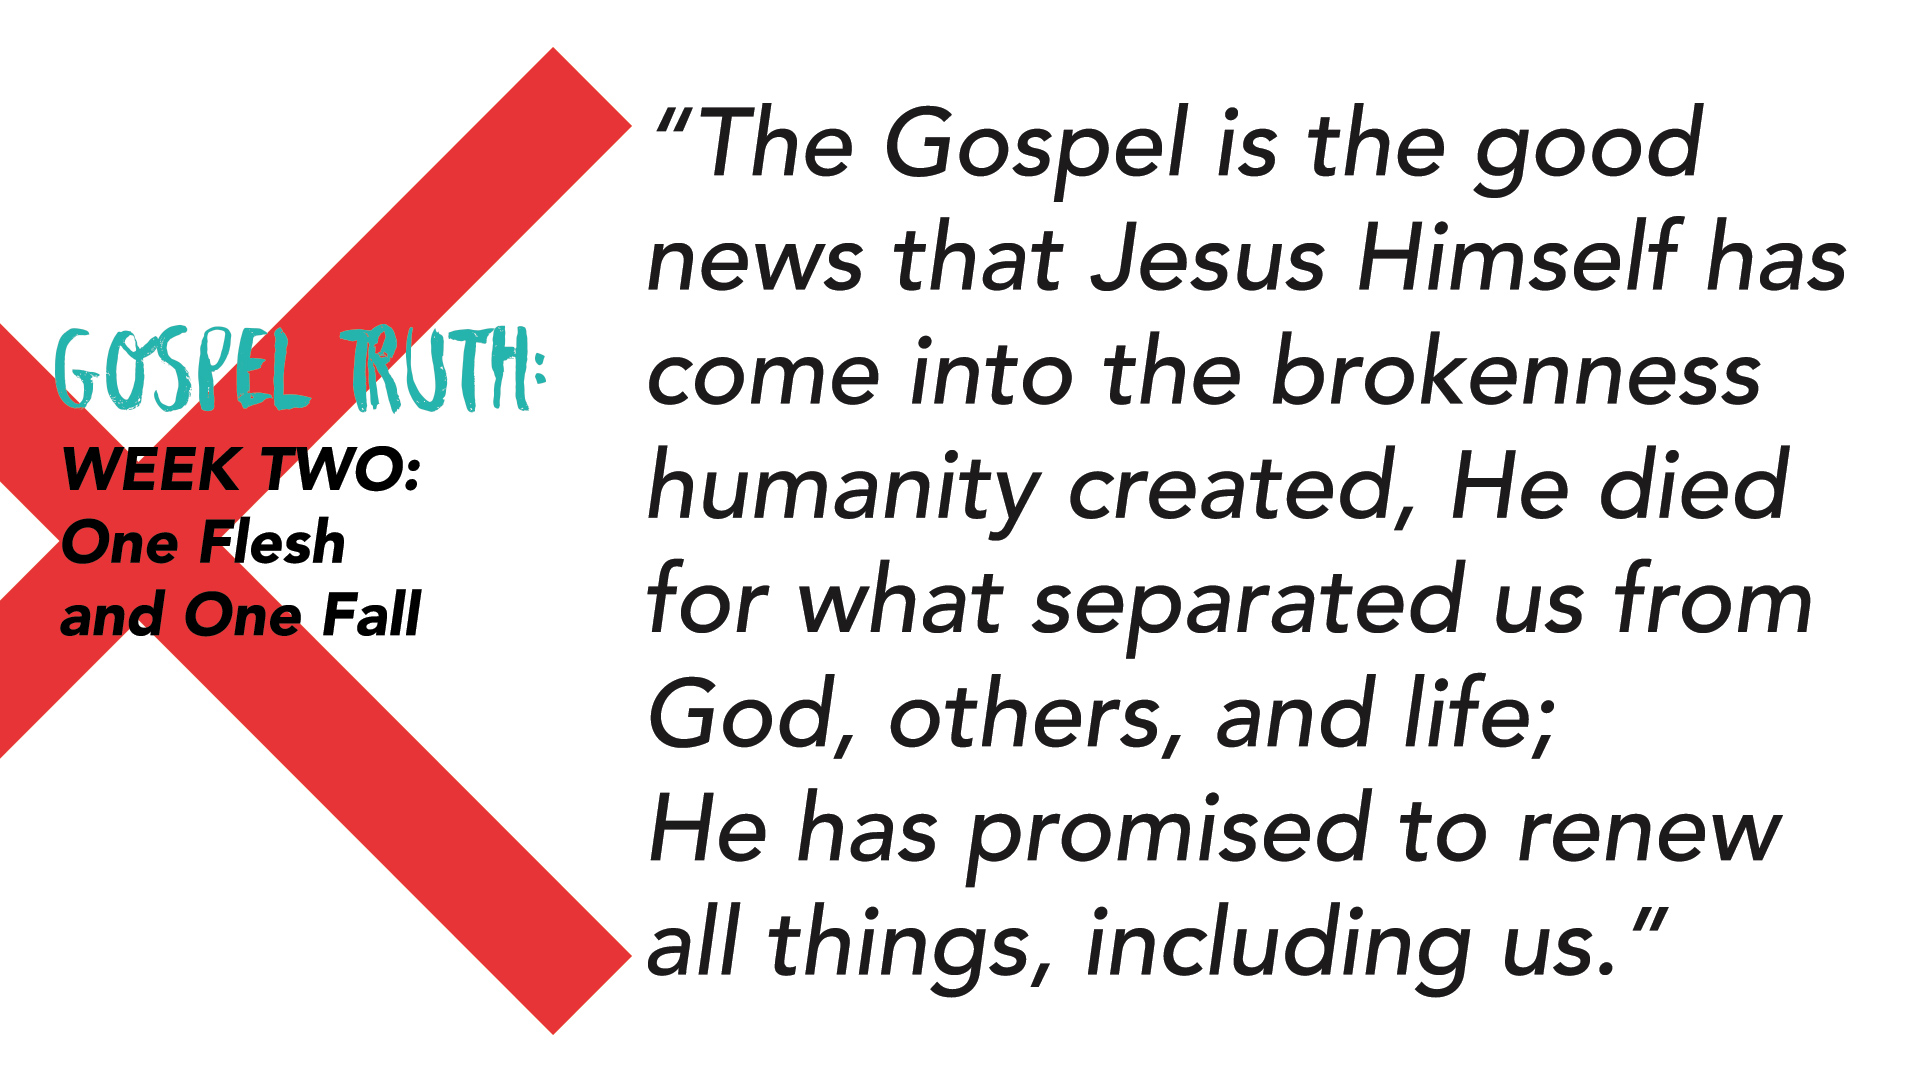 """The Gospel is the good news that Jesus Himself has come into the brokenness humanity created, He died for what separated us from God, others, and life; He has promised to renew all things, including us."""